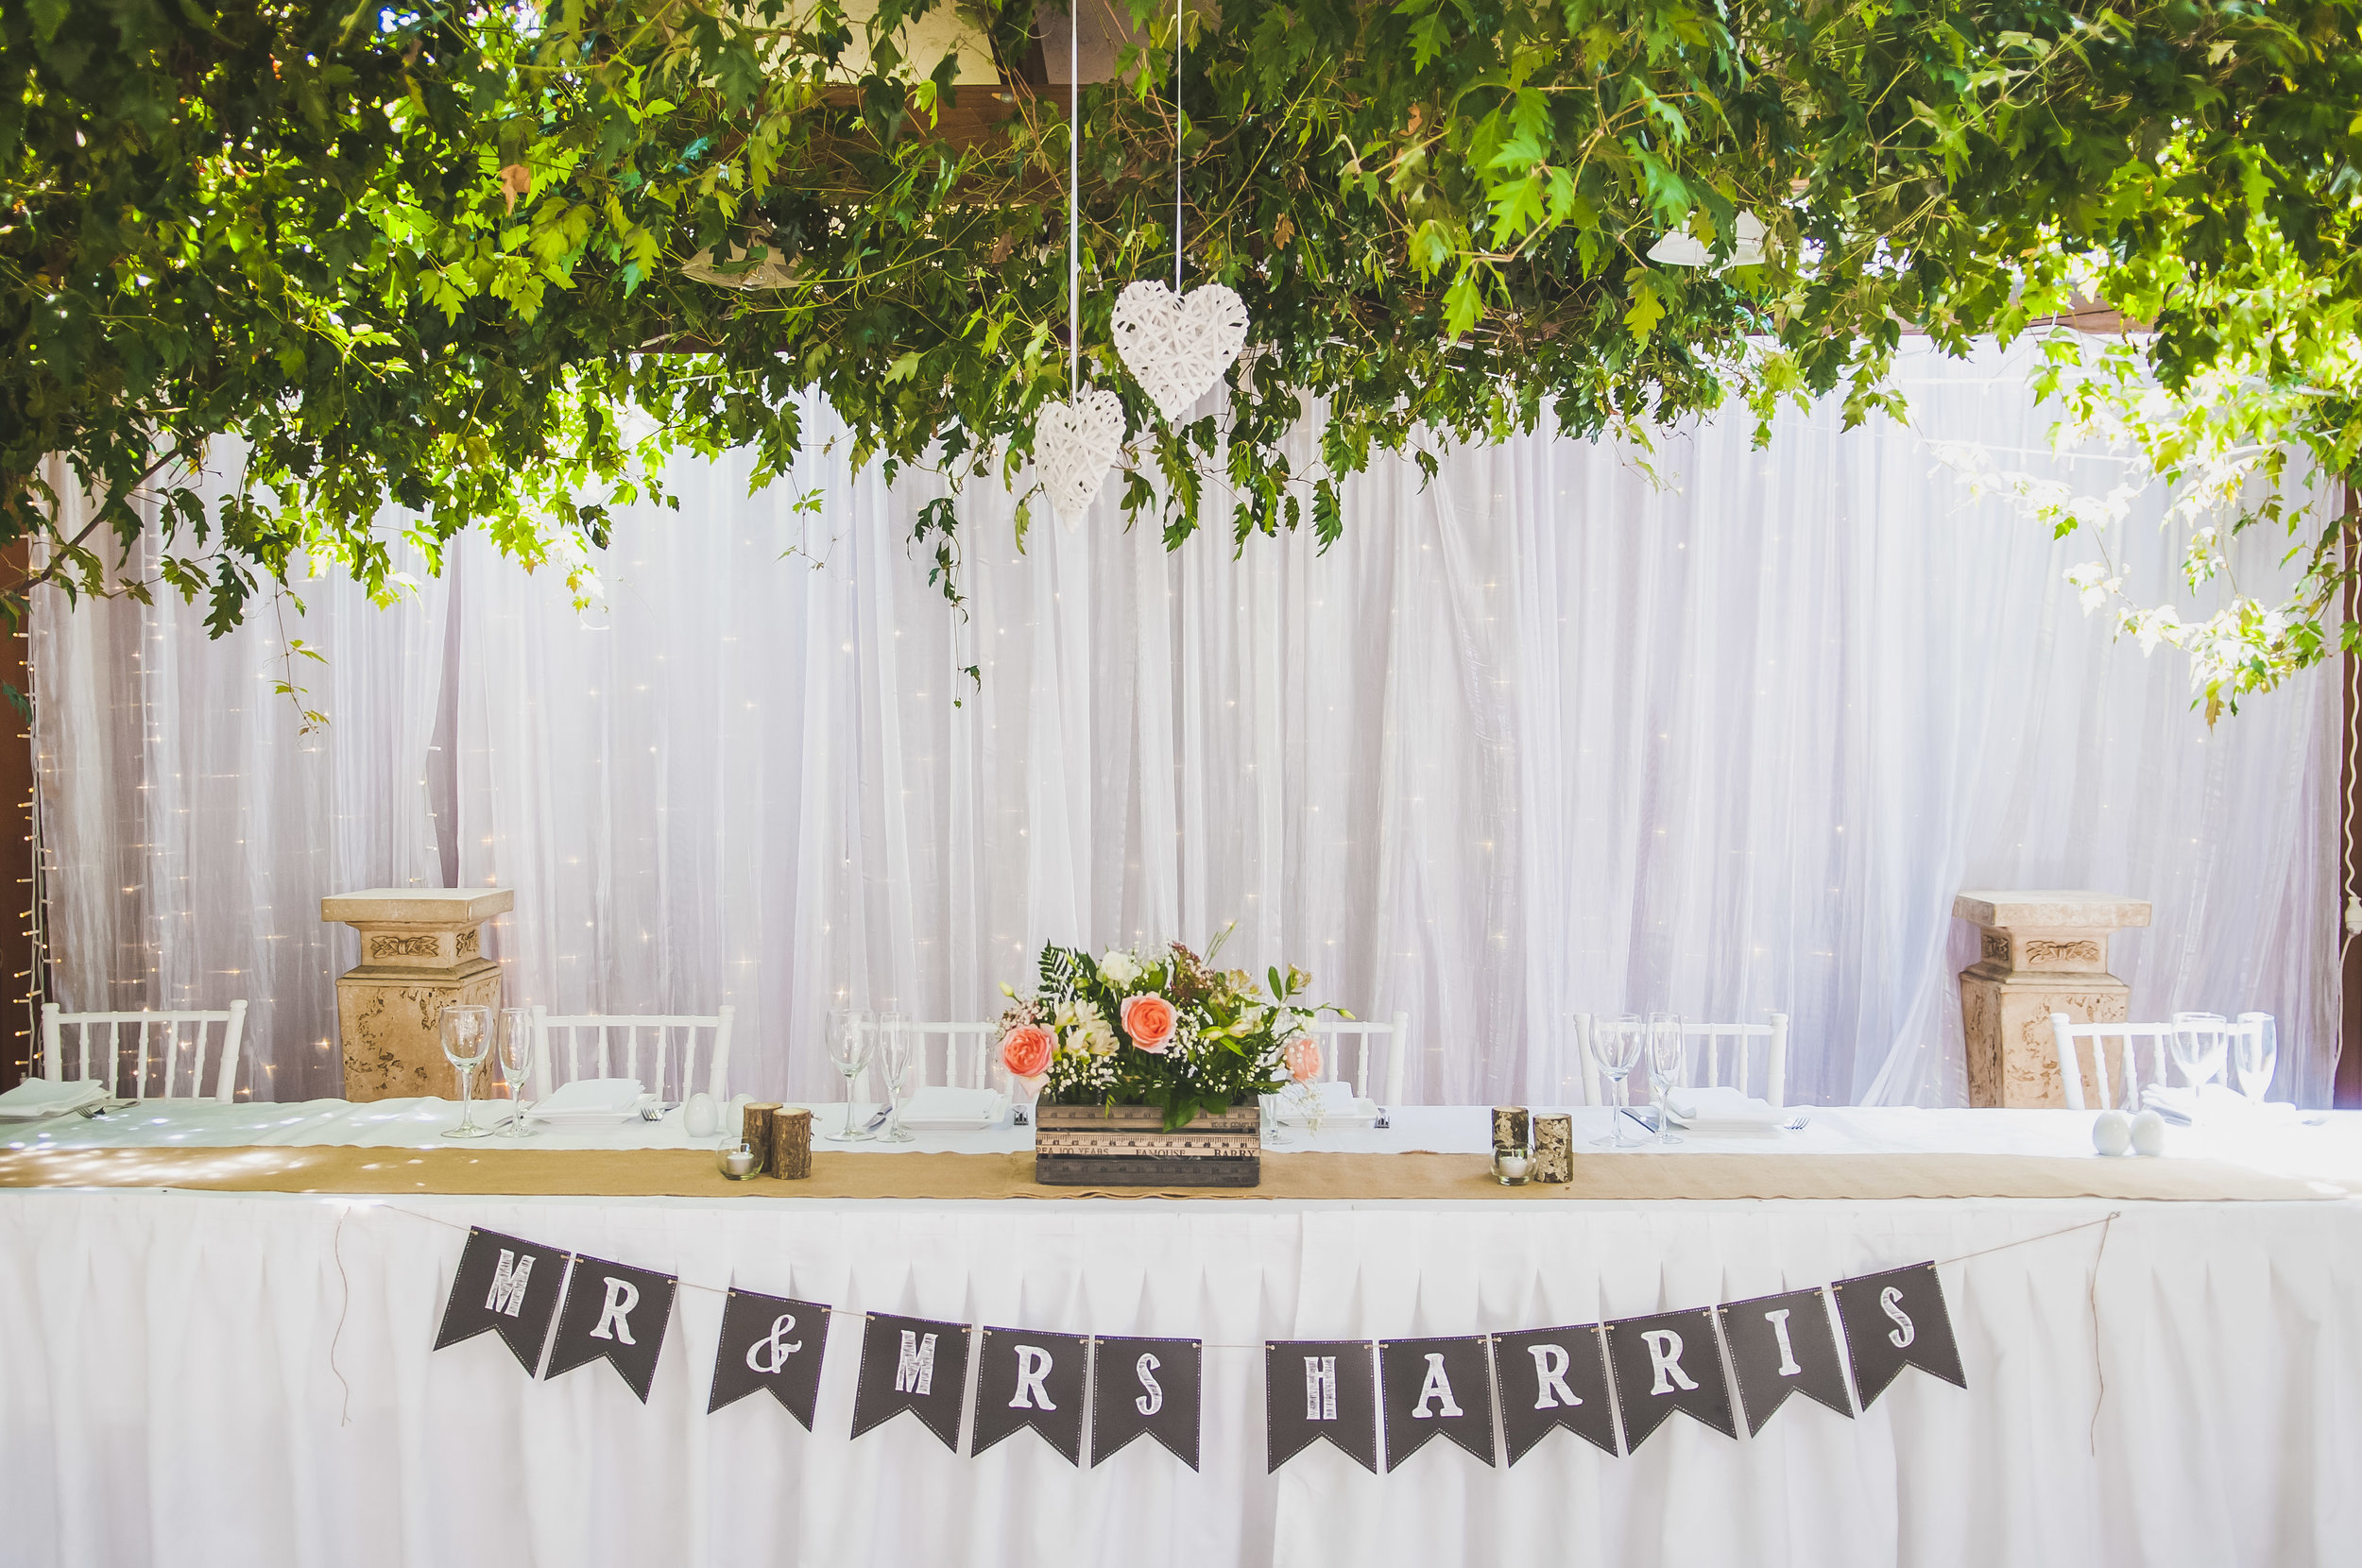 Wedding photo of top table and decorations